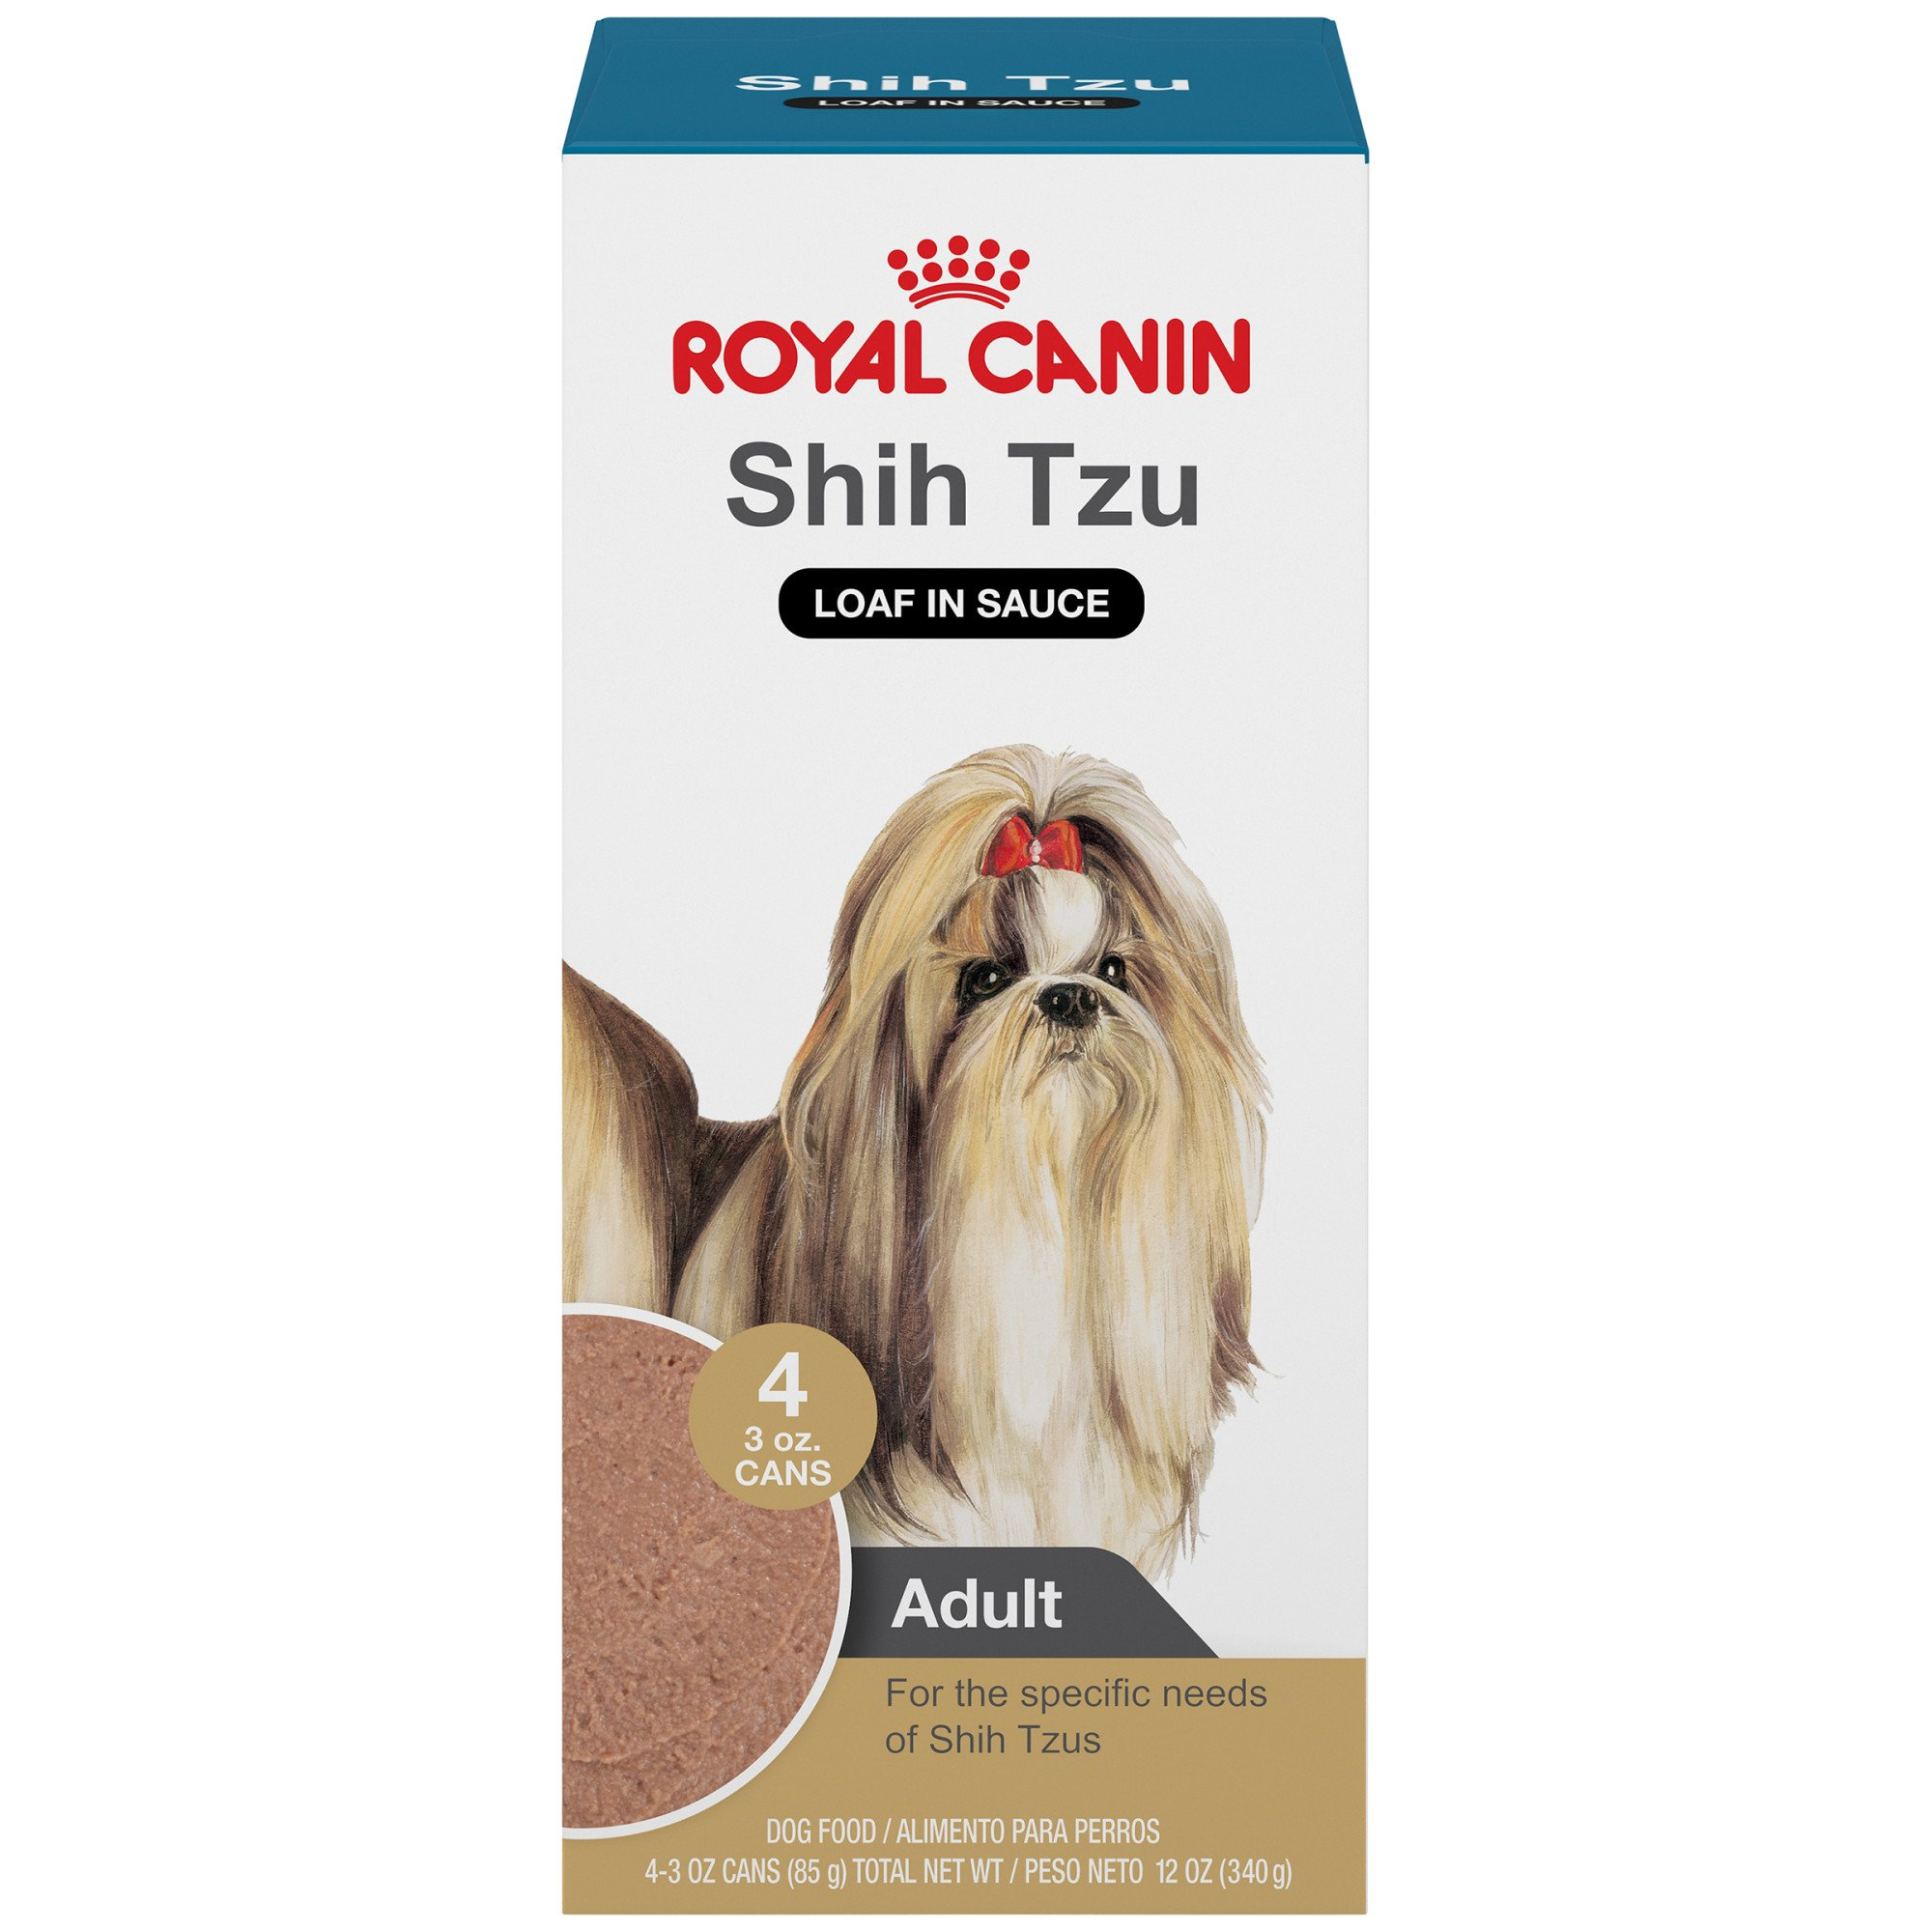 Royal Canin Shih Tzu Loaf In Sauce Dog Food, 3 Ounce Cans, Package of 4 cans